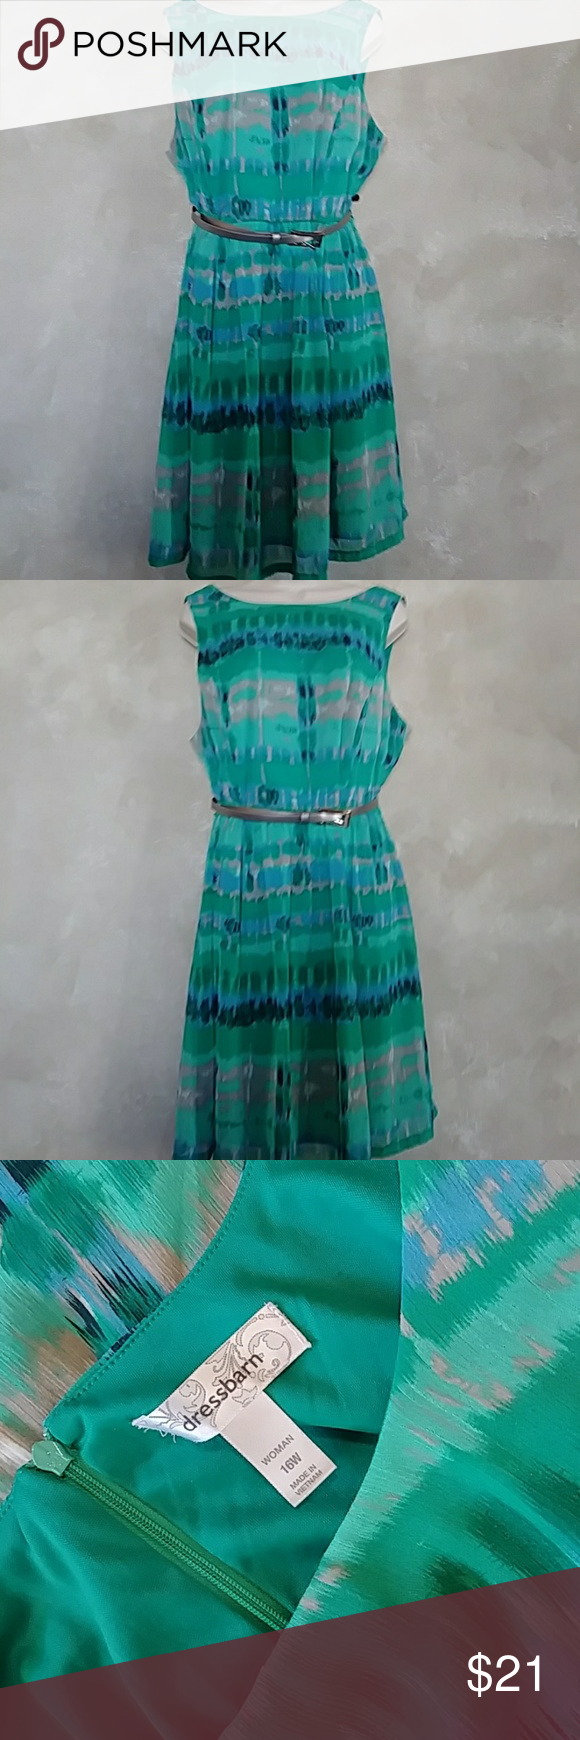 ????DressBarn Teal Dress/Silver Belt Size 16W You'll be stylin right into Spring in this gorgeous teal dress with splashes of cream, blue, black & tan and a silver belt to tie it all together!  Career wear with jacket in the same color of any of the splashes or wear casual with your fave sandals!  Like new condition!   Belt has a few minor scratches where buckles. (See last pic) Easy Care wash/wear!! ~22 bust ~20 waist  ~37 long S5 Dress Barn Dresses #wfaves